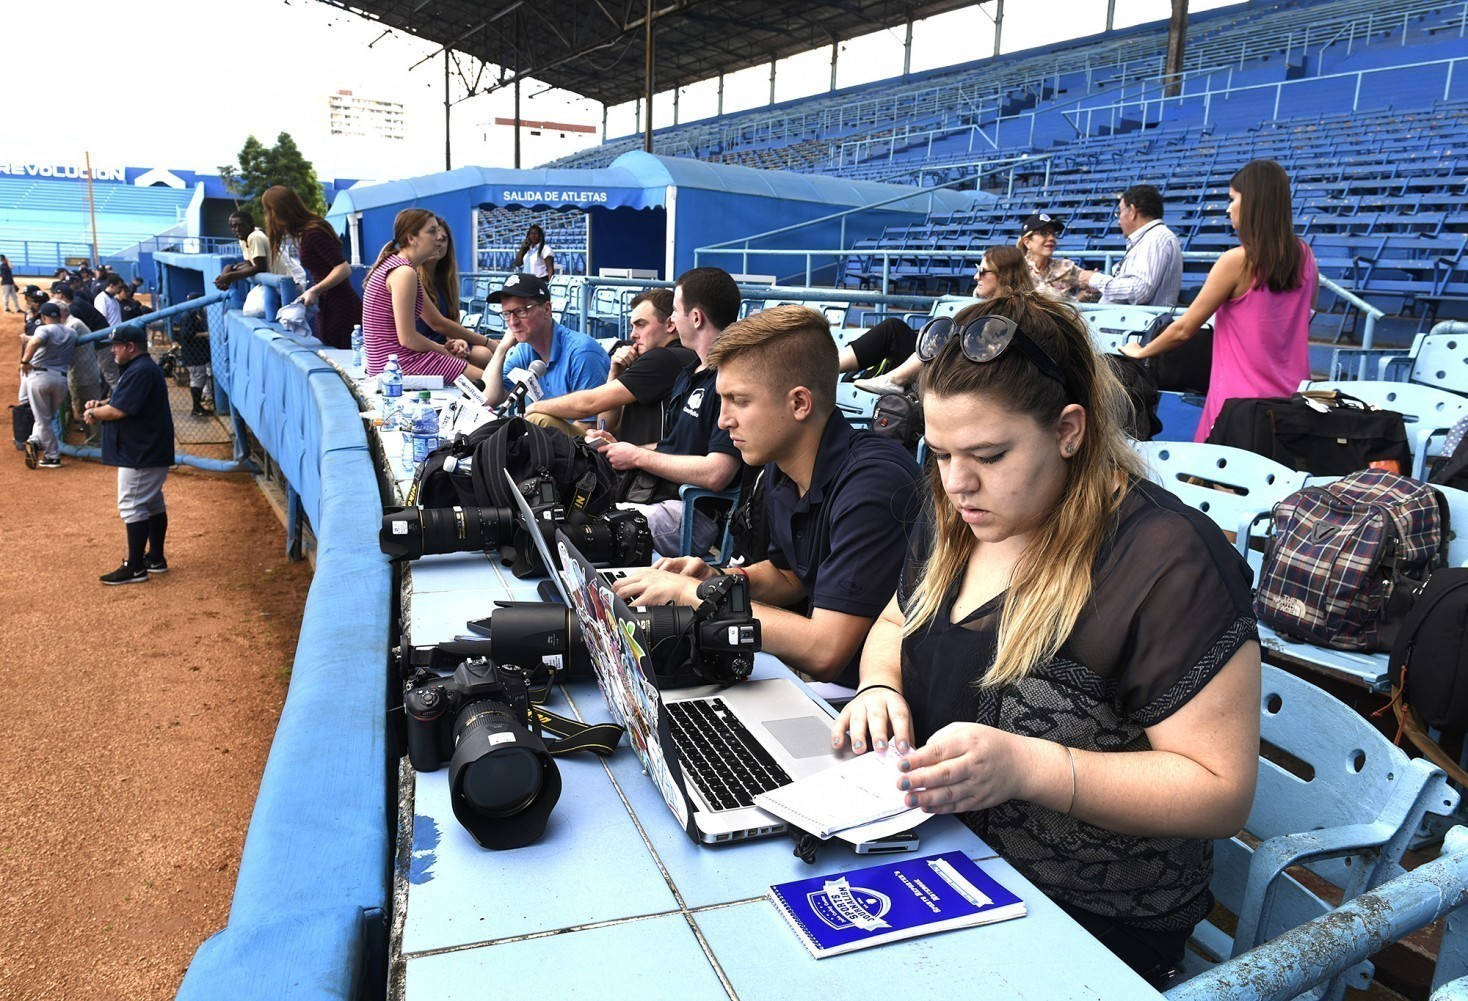 Students at work in Cuban press box